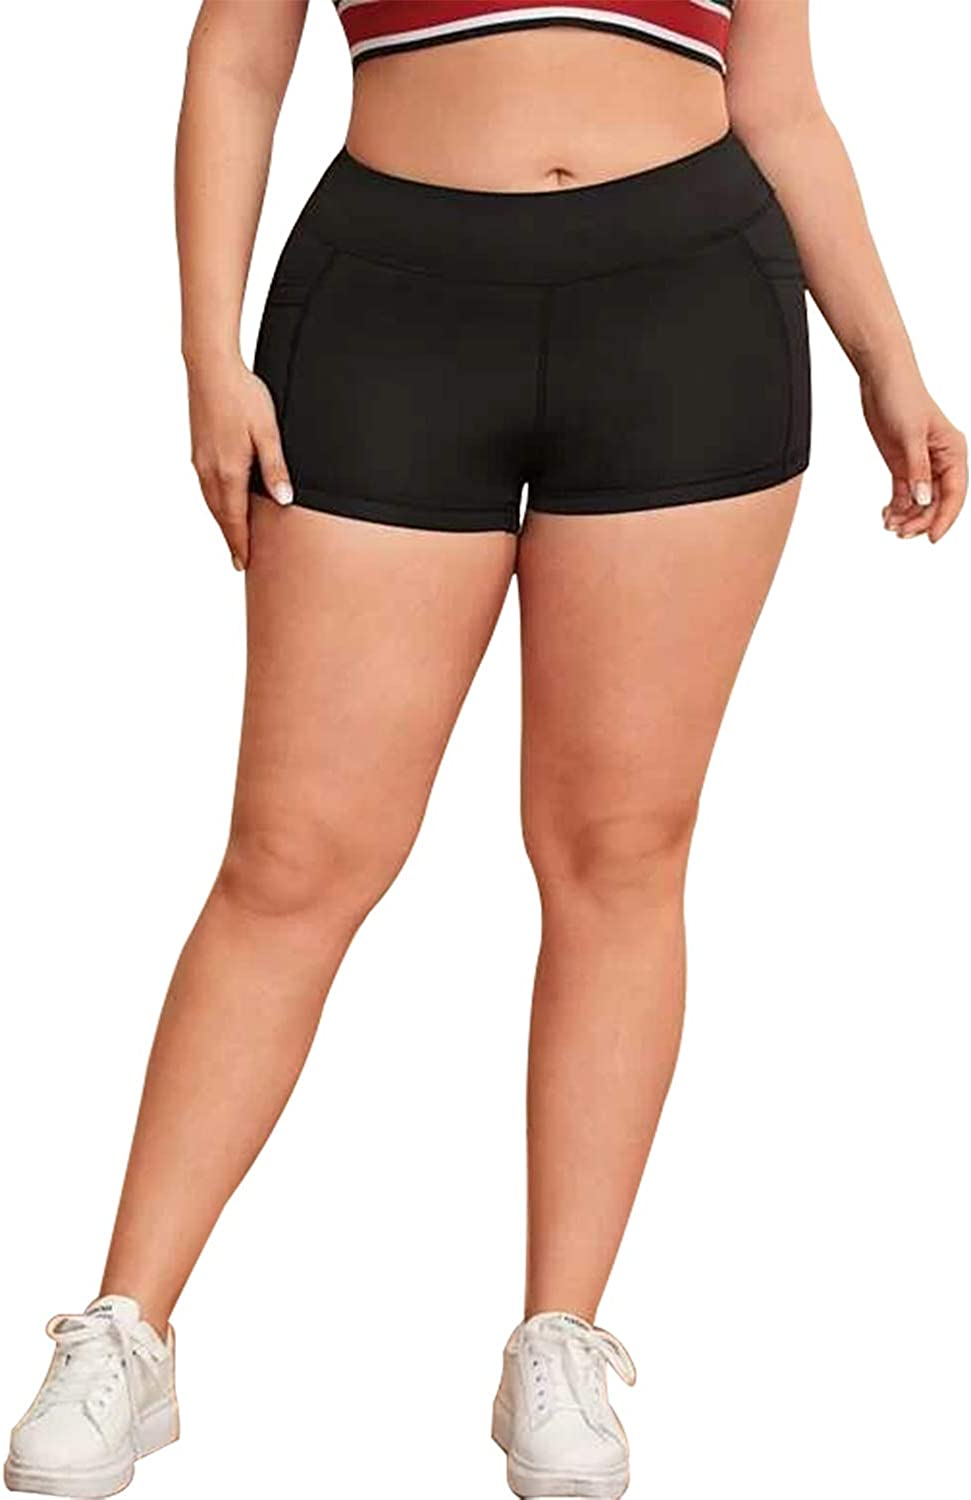 B.BANG Women's Comfy Plus-Size Athletic Shorts with Side Pockets Running Workout Shorts for Women